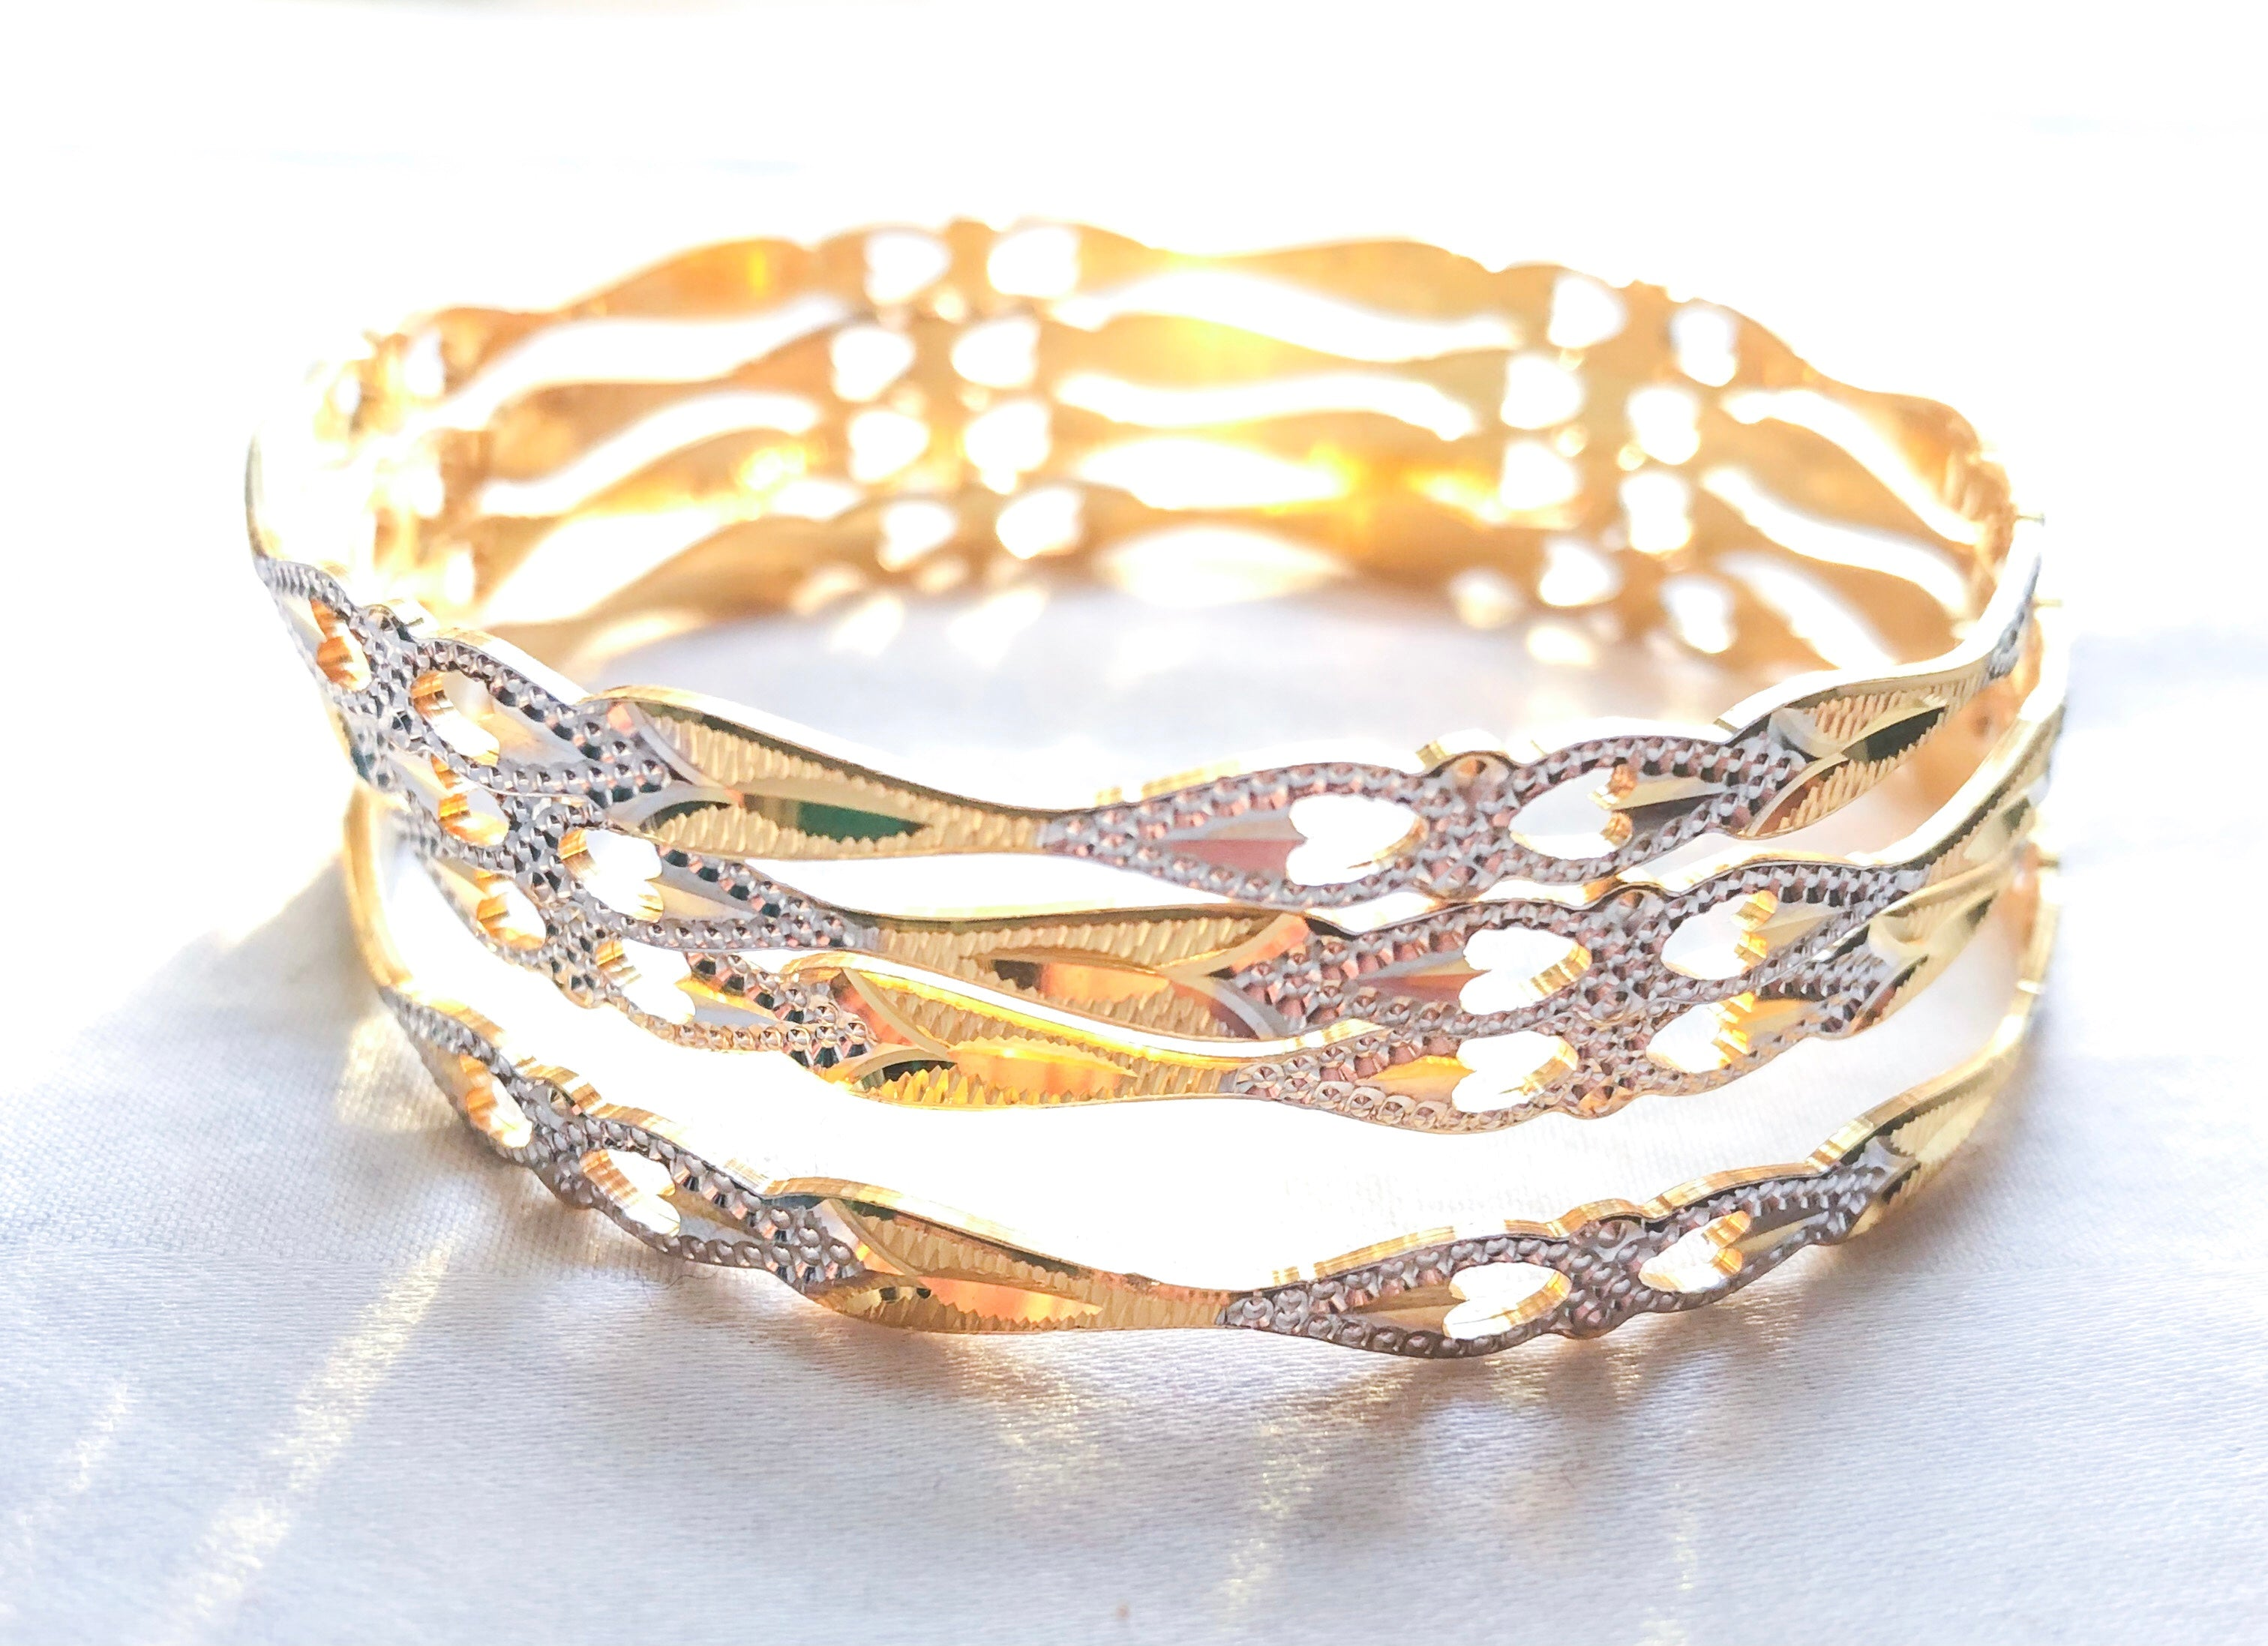 Bracelets - Design 2 (Set of 2)